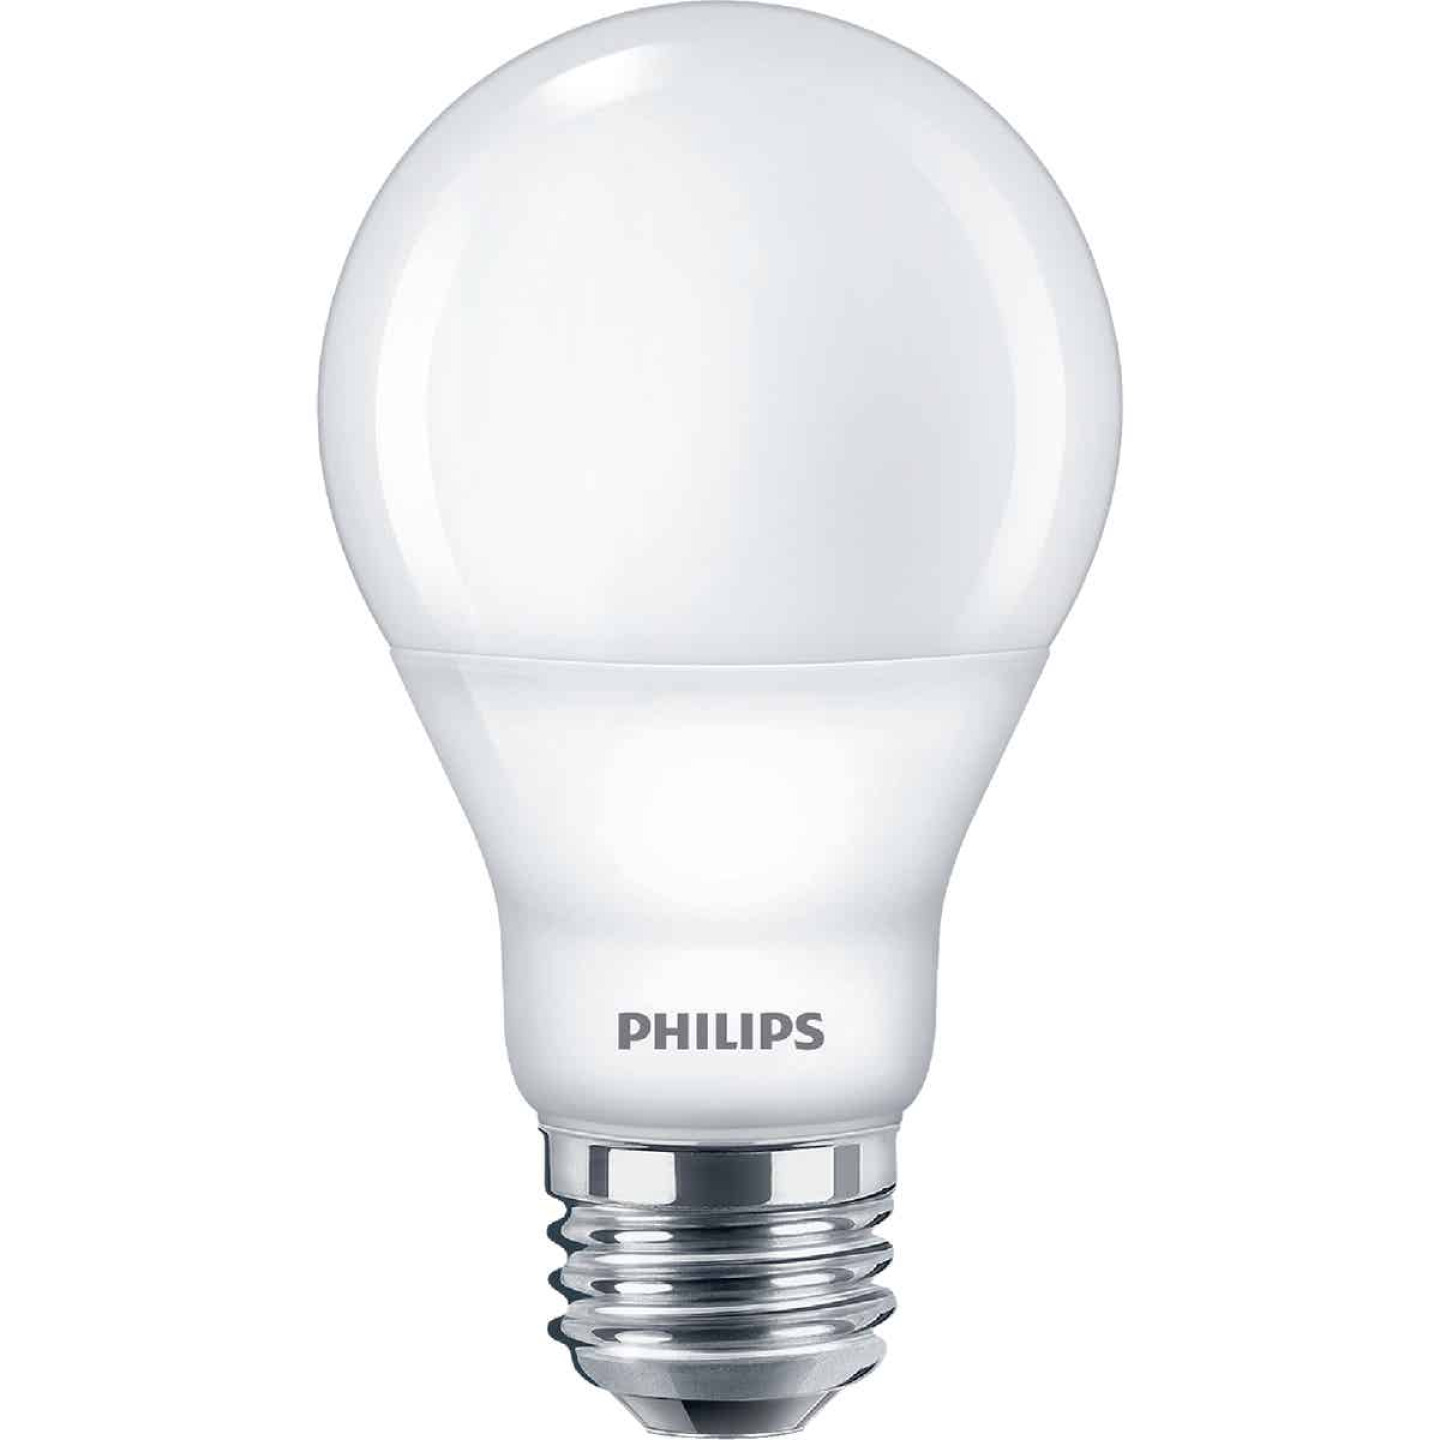 Philips SceneSwitch 60W Equivalent Soft White/Warm White/Warm Glow A19 Medium LED Light Bulb Image 1